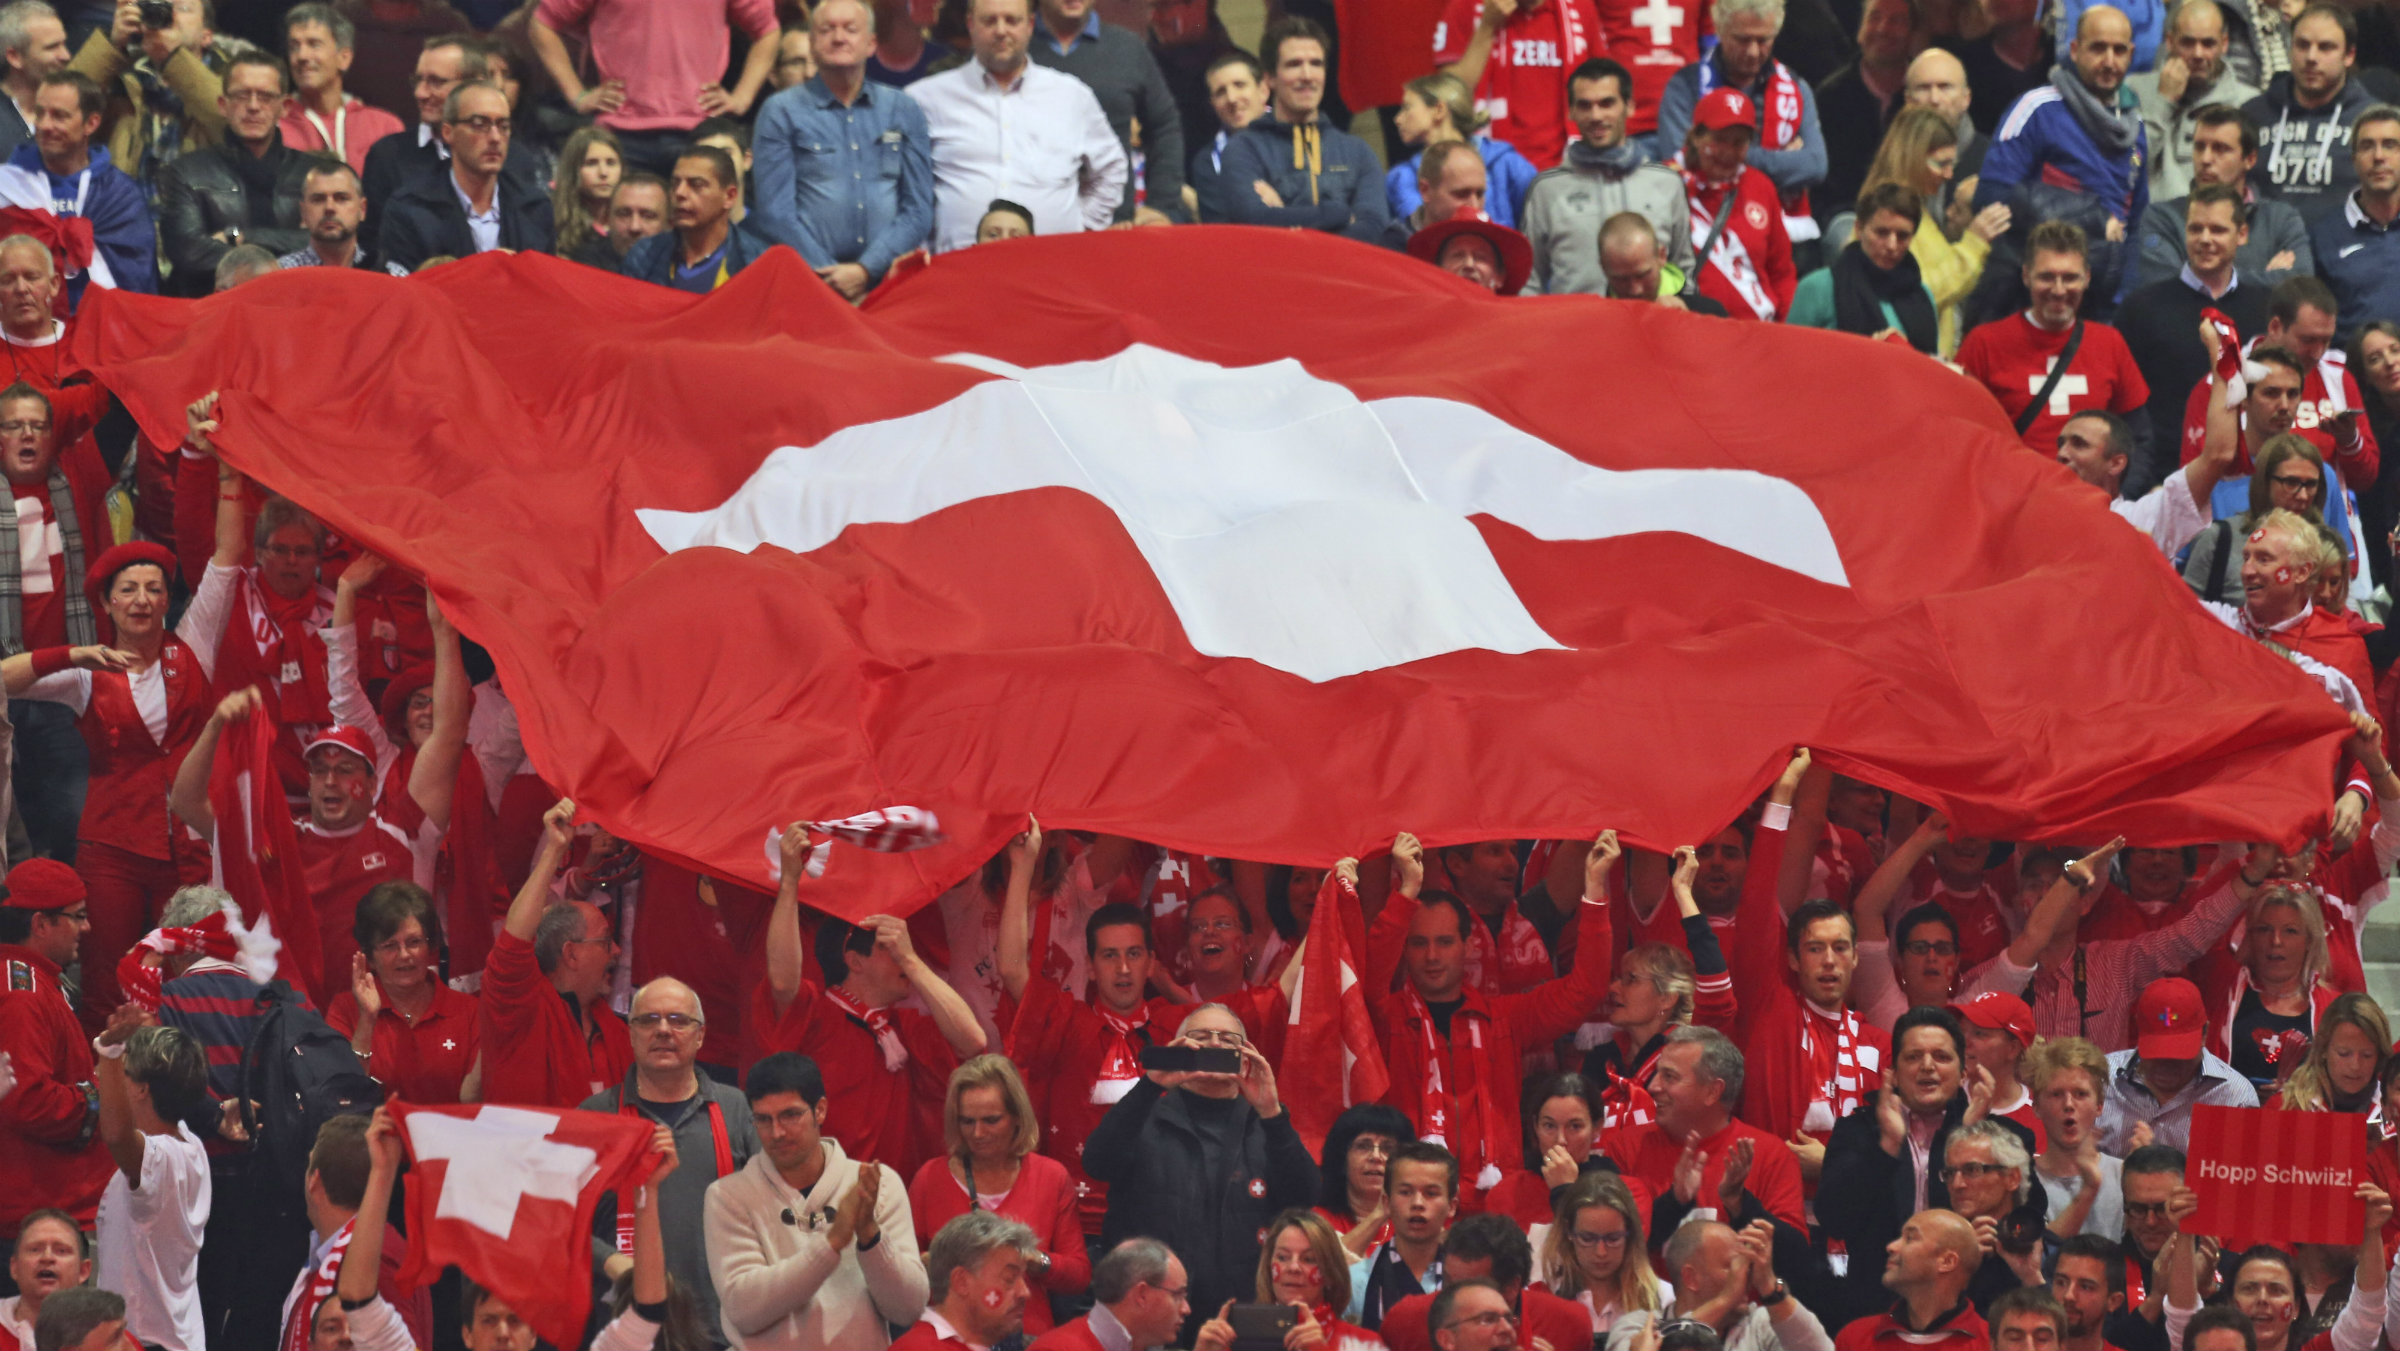 Swiss fans hold the national flag as Roger Federer defeats France's Richard Gasquet to win the Davis Cup final between France and Switzerland at Stade Pierre Mauroy in Lille, northern France, Sunday, Nov. 23, 2014. (AP Photo/Peter Dejong)